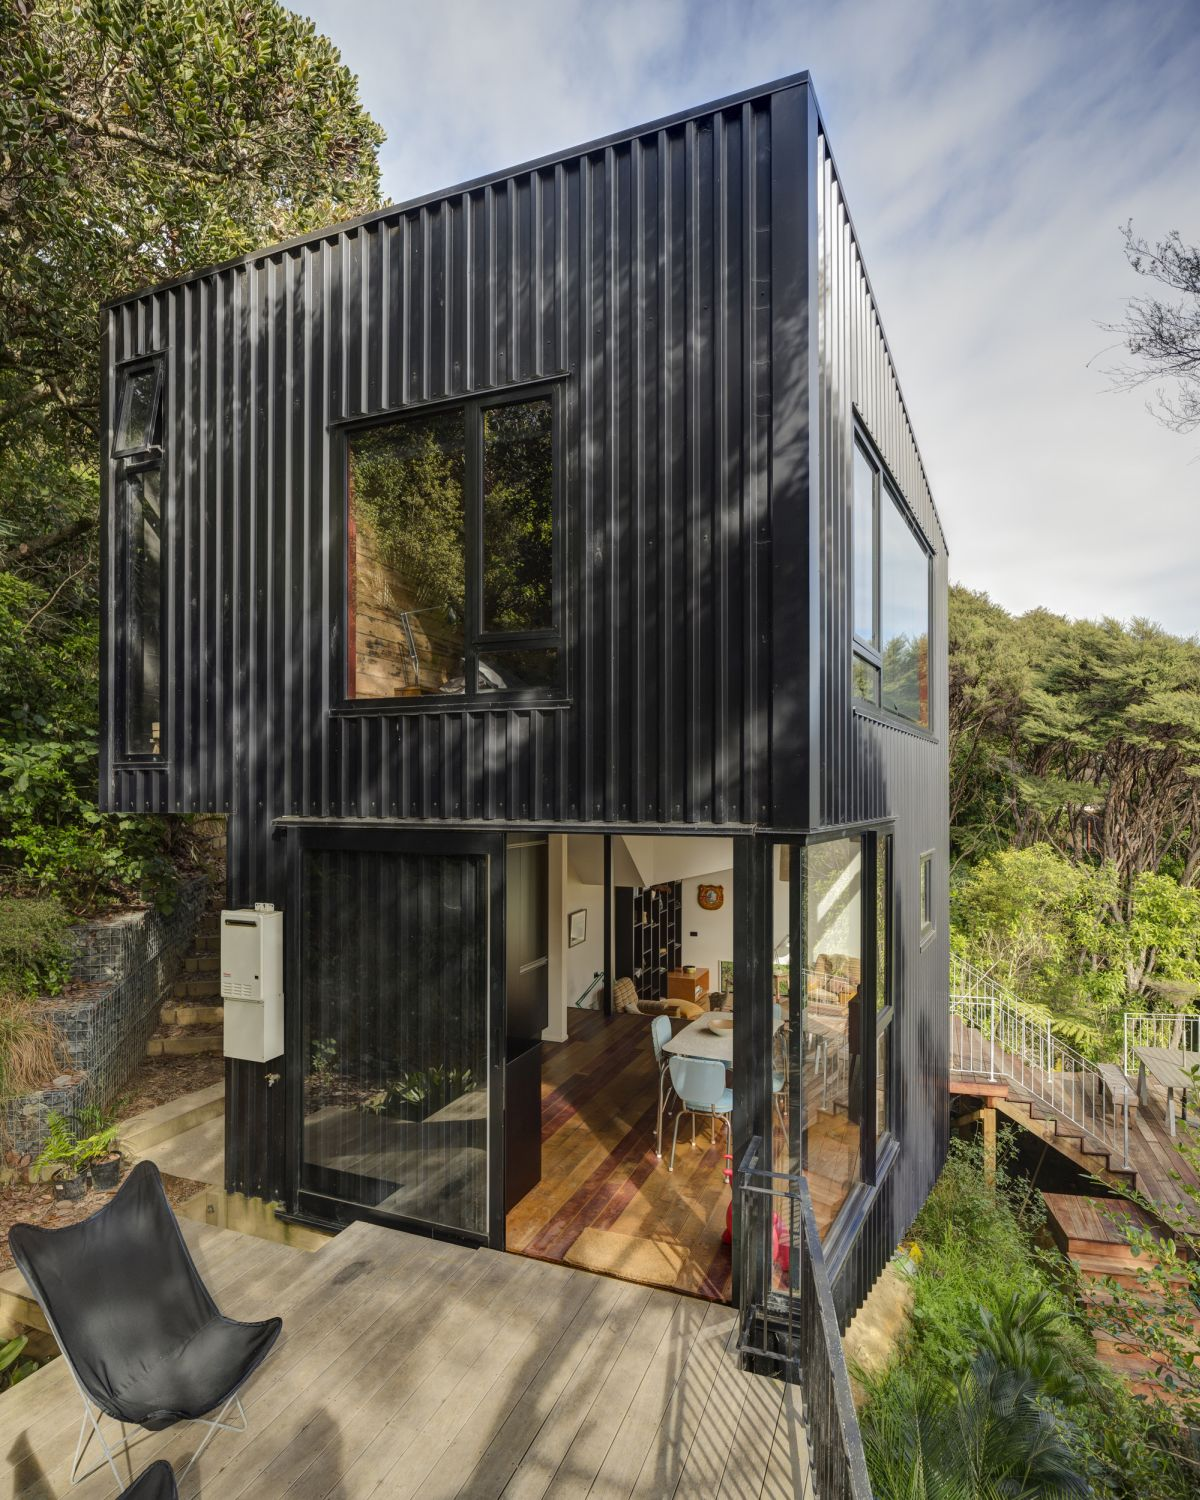 Large openings and panorama windows expose the interior spaces to their beautiful natural surroundings